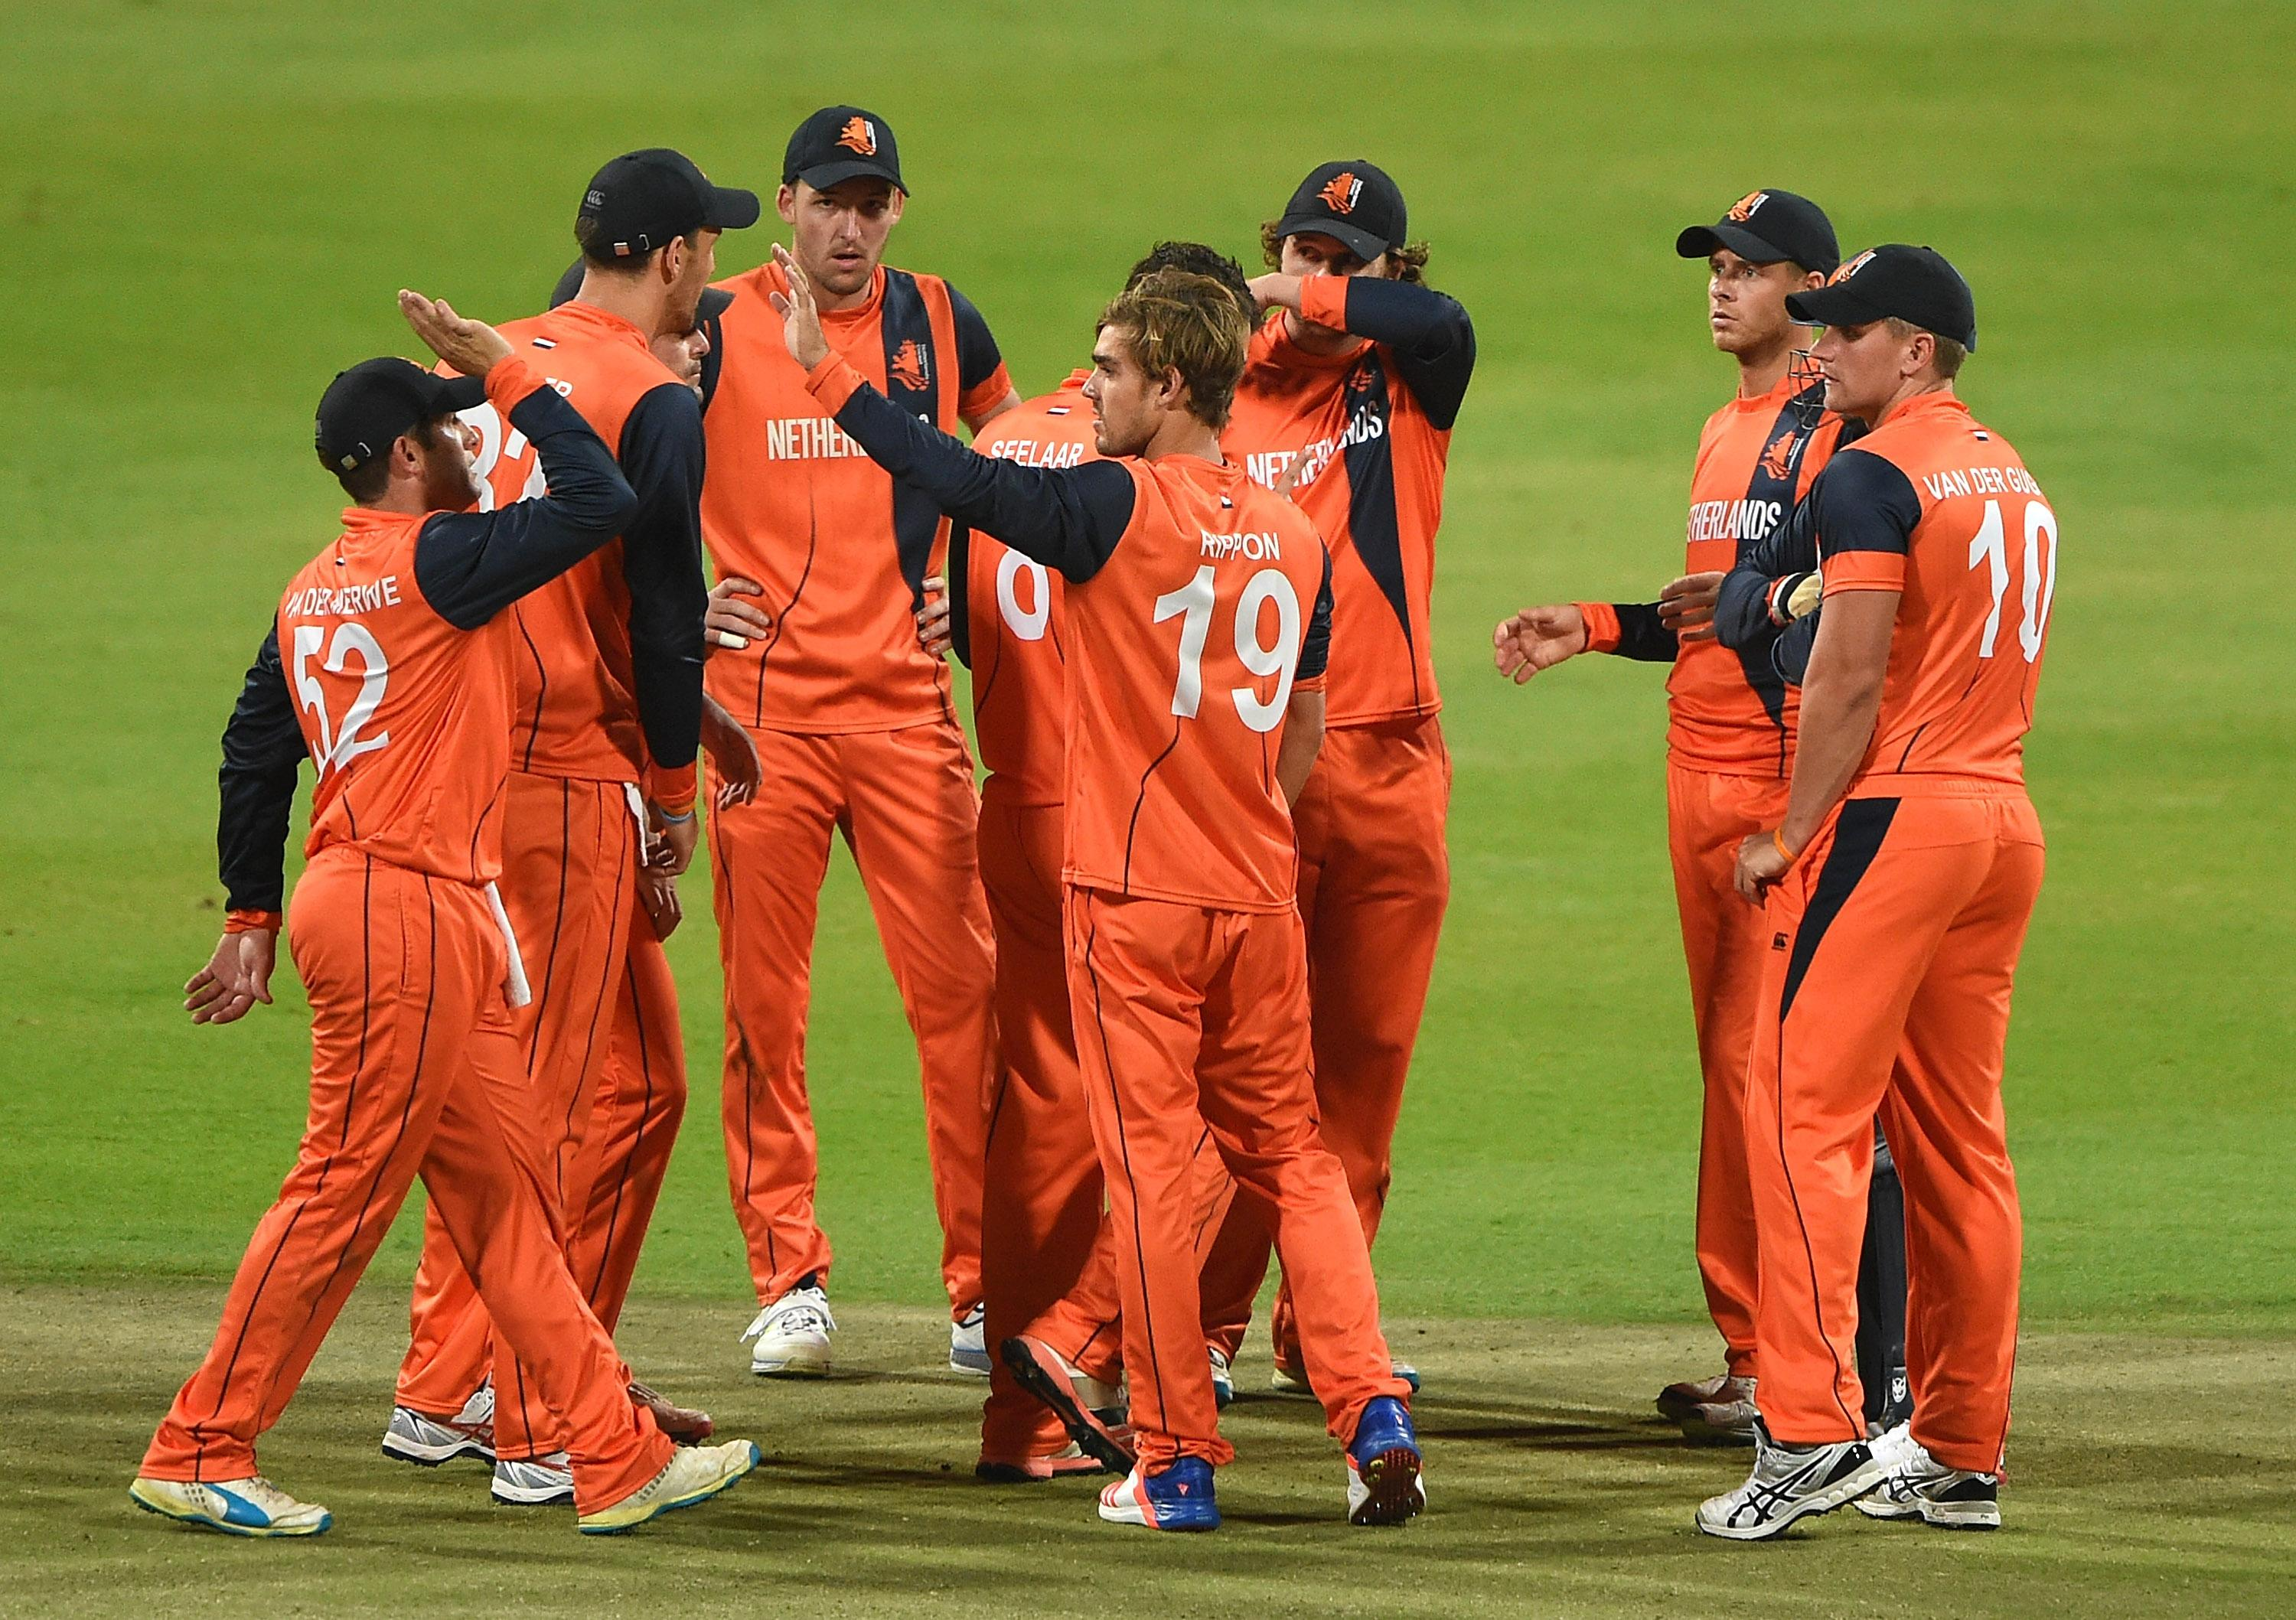 Netherlands Ready To Shine On The Big Stage